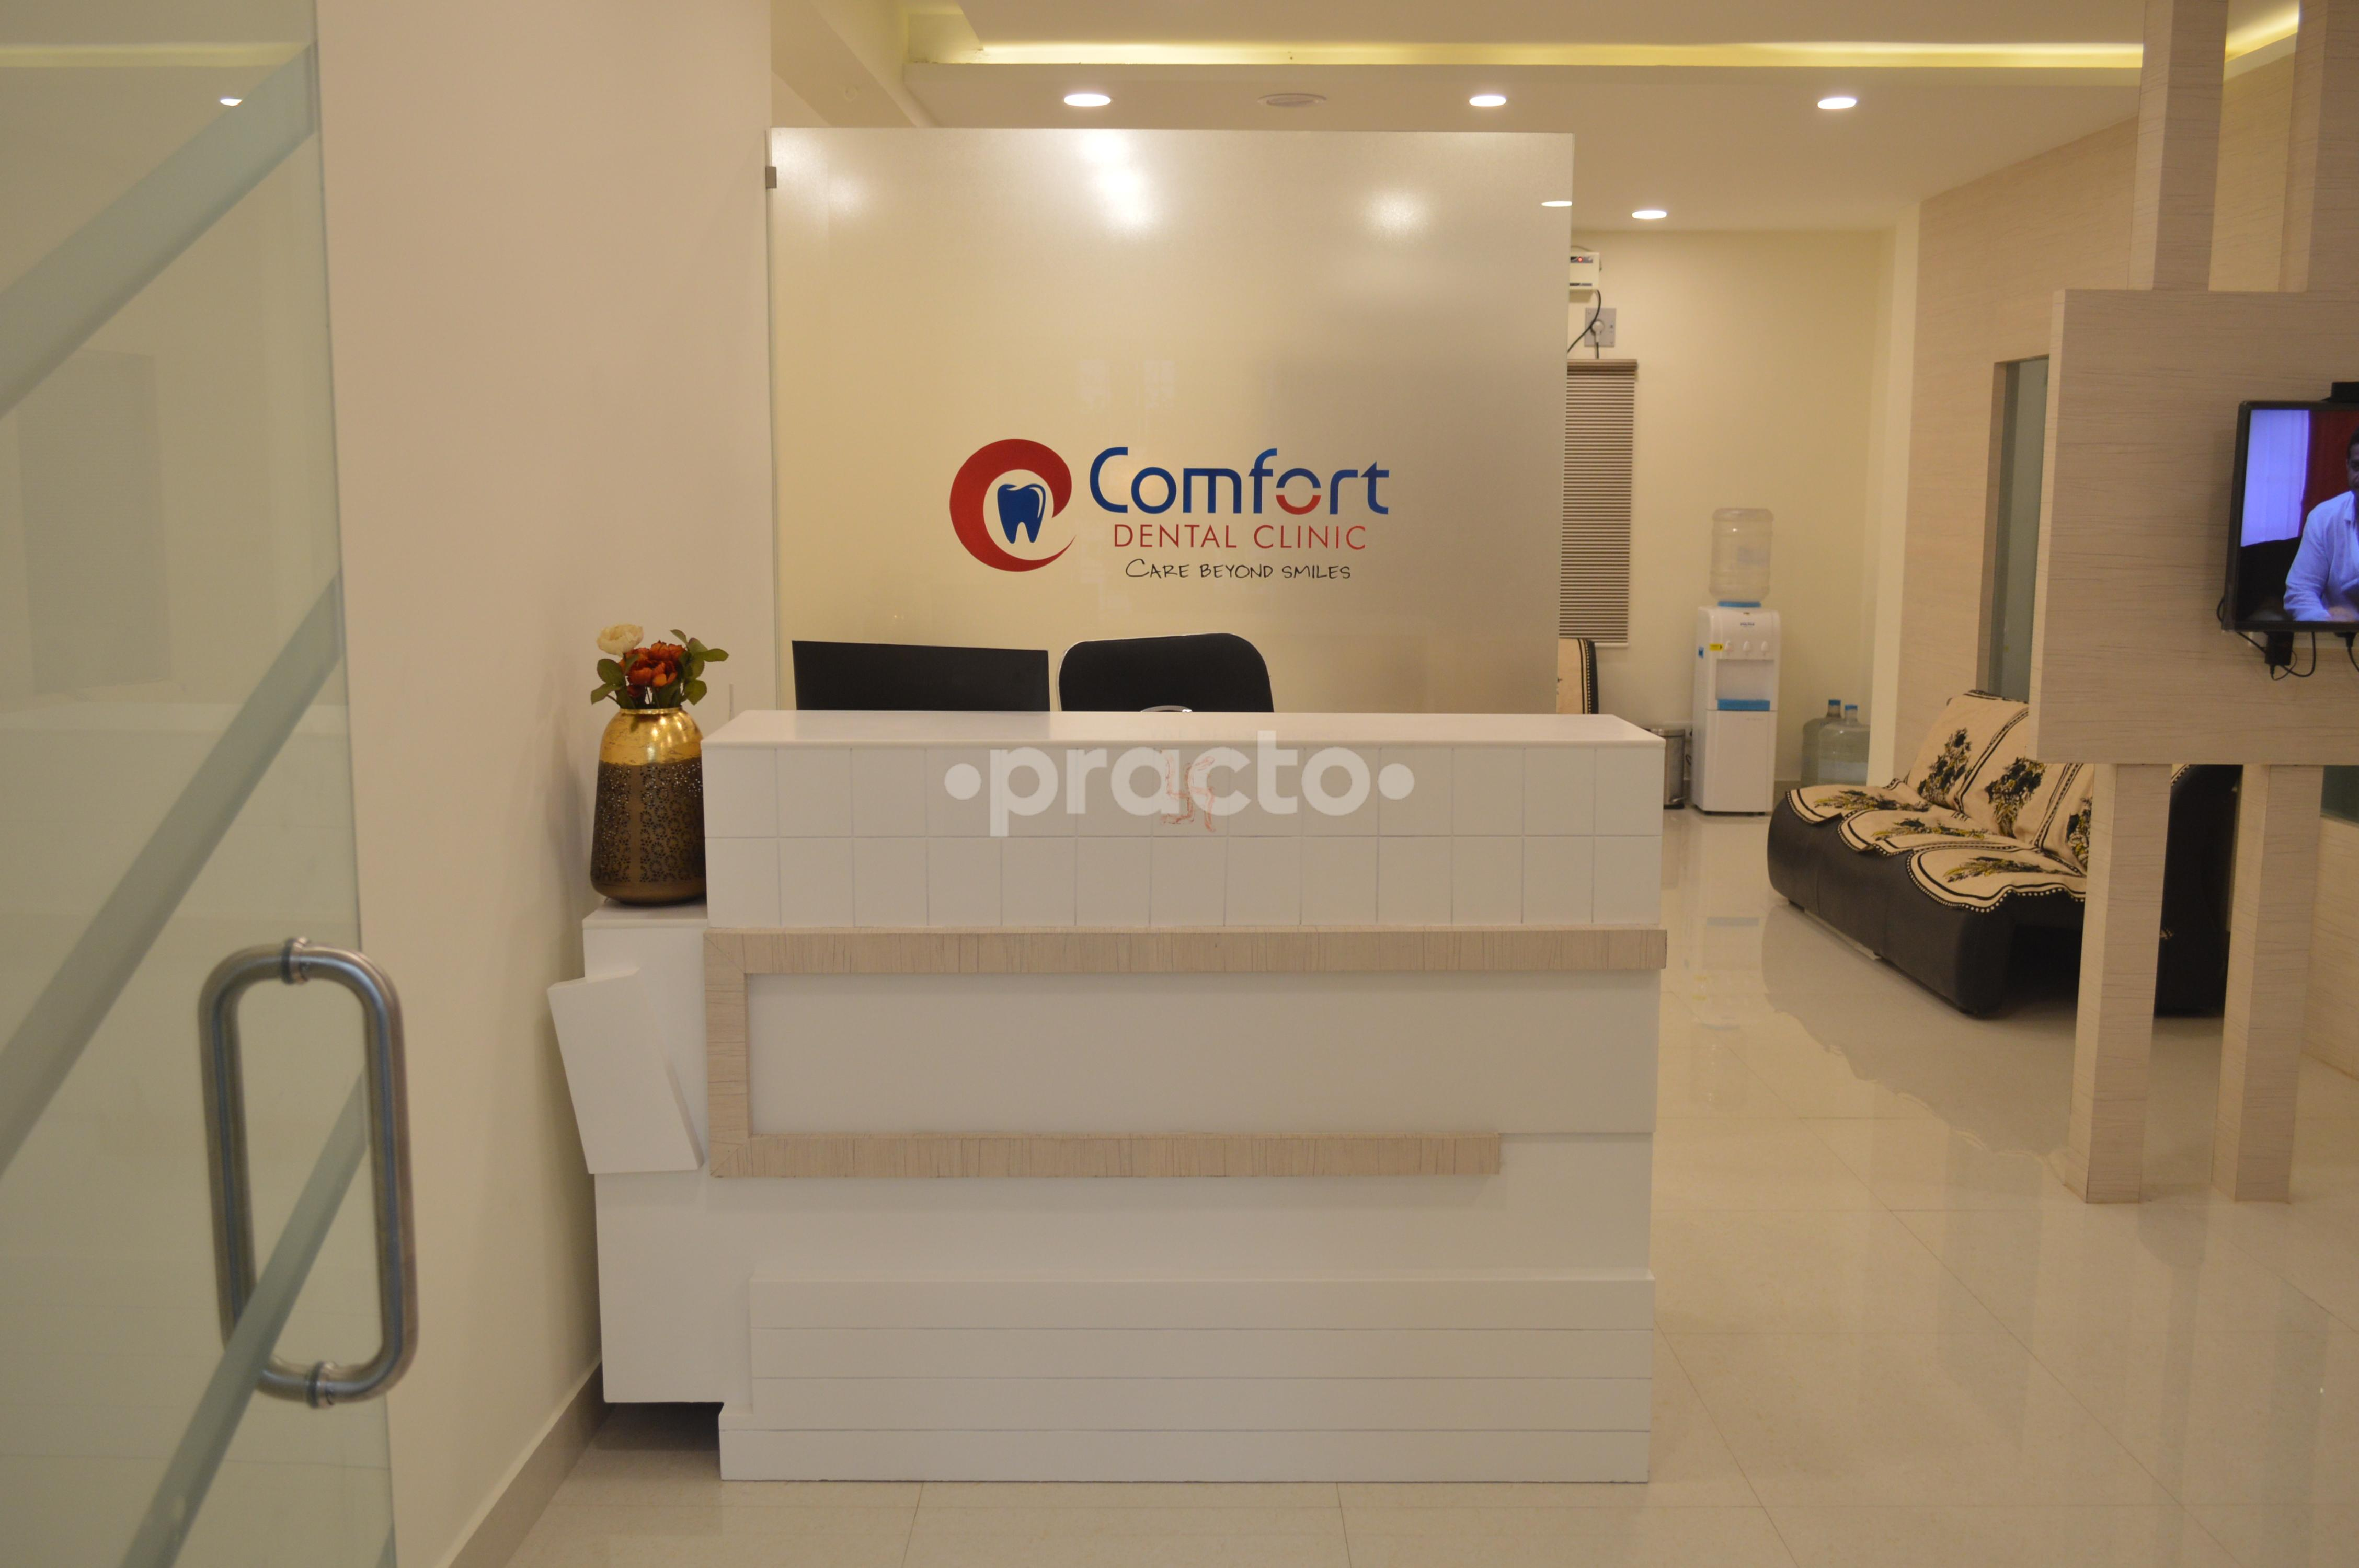 me clinic book dental view practo near clinics best reviews in appointment hyderabad hills banjara address comfort comforter